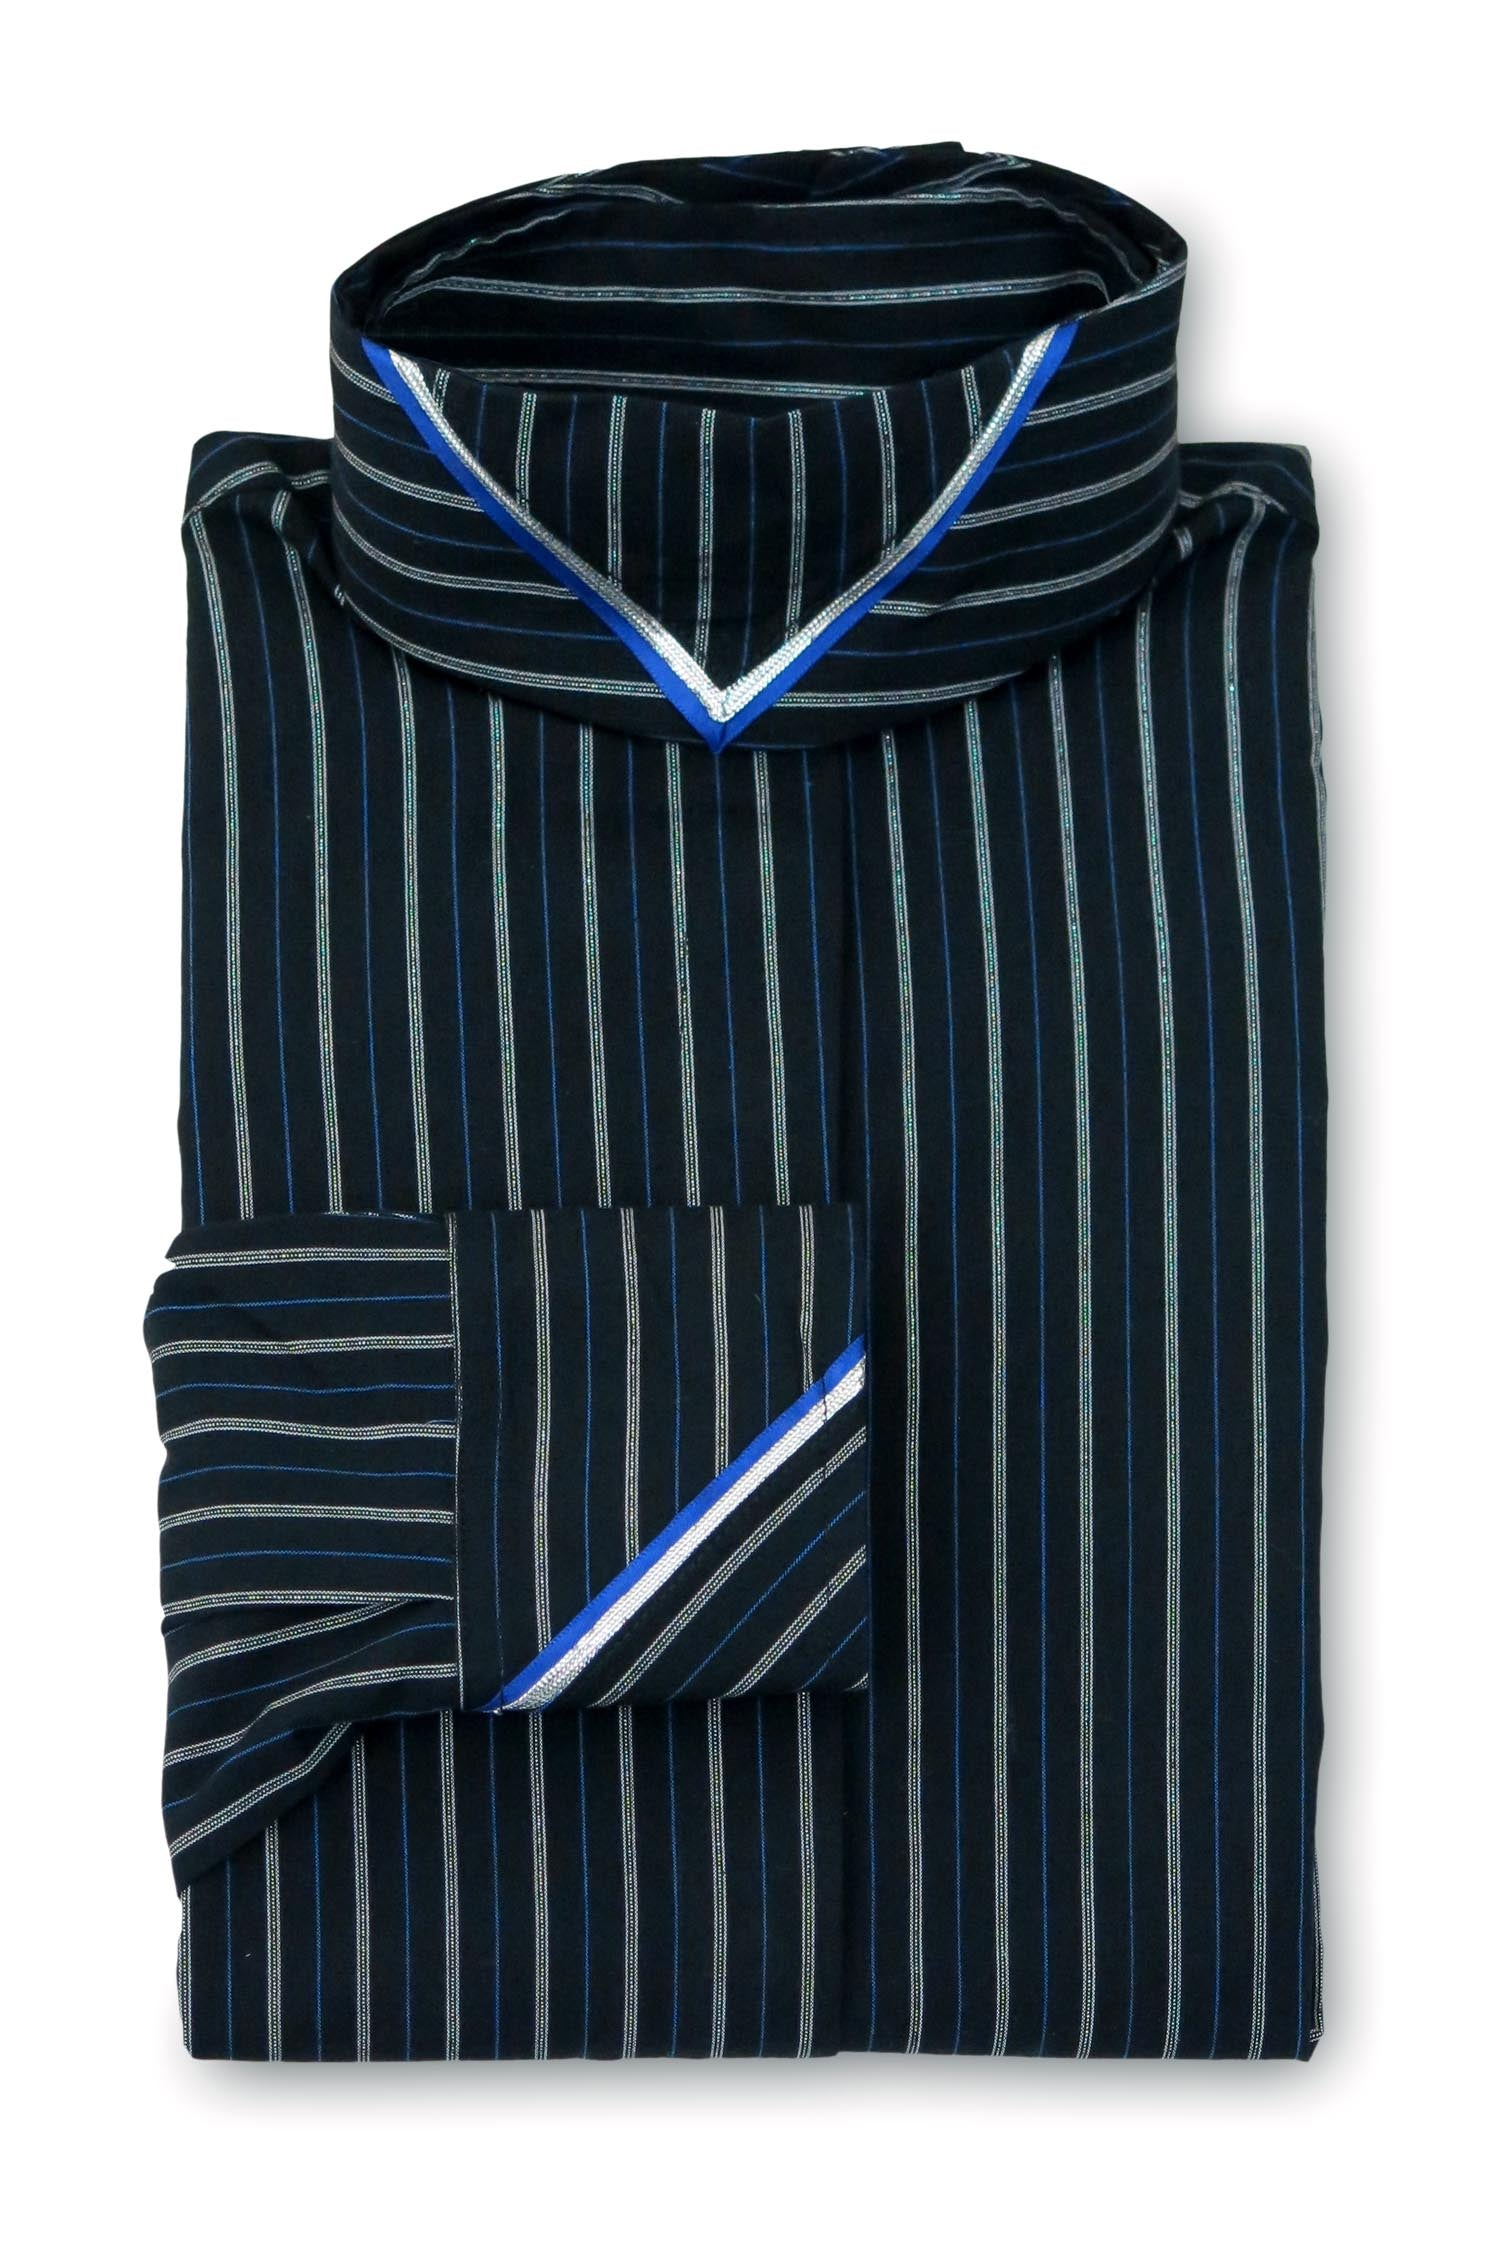 Black Metallic Stripe - Cobalt & Silver